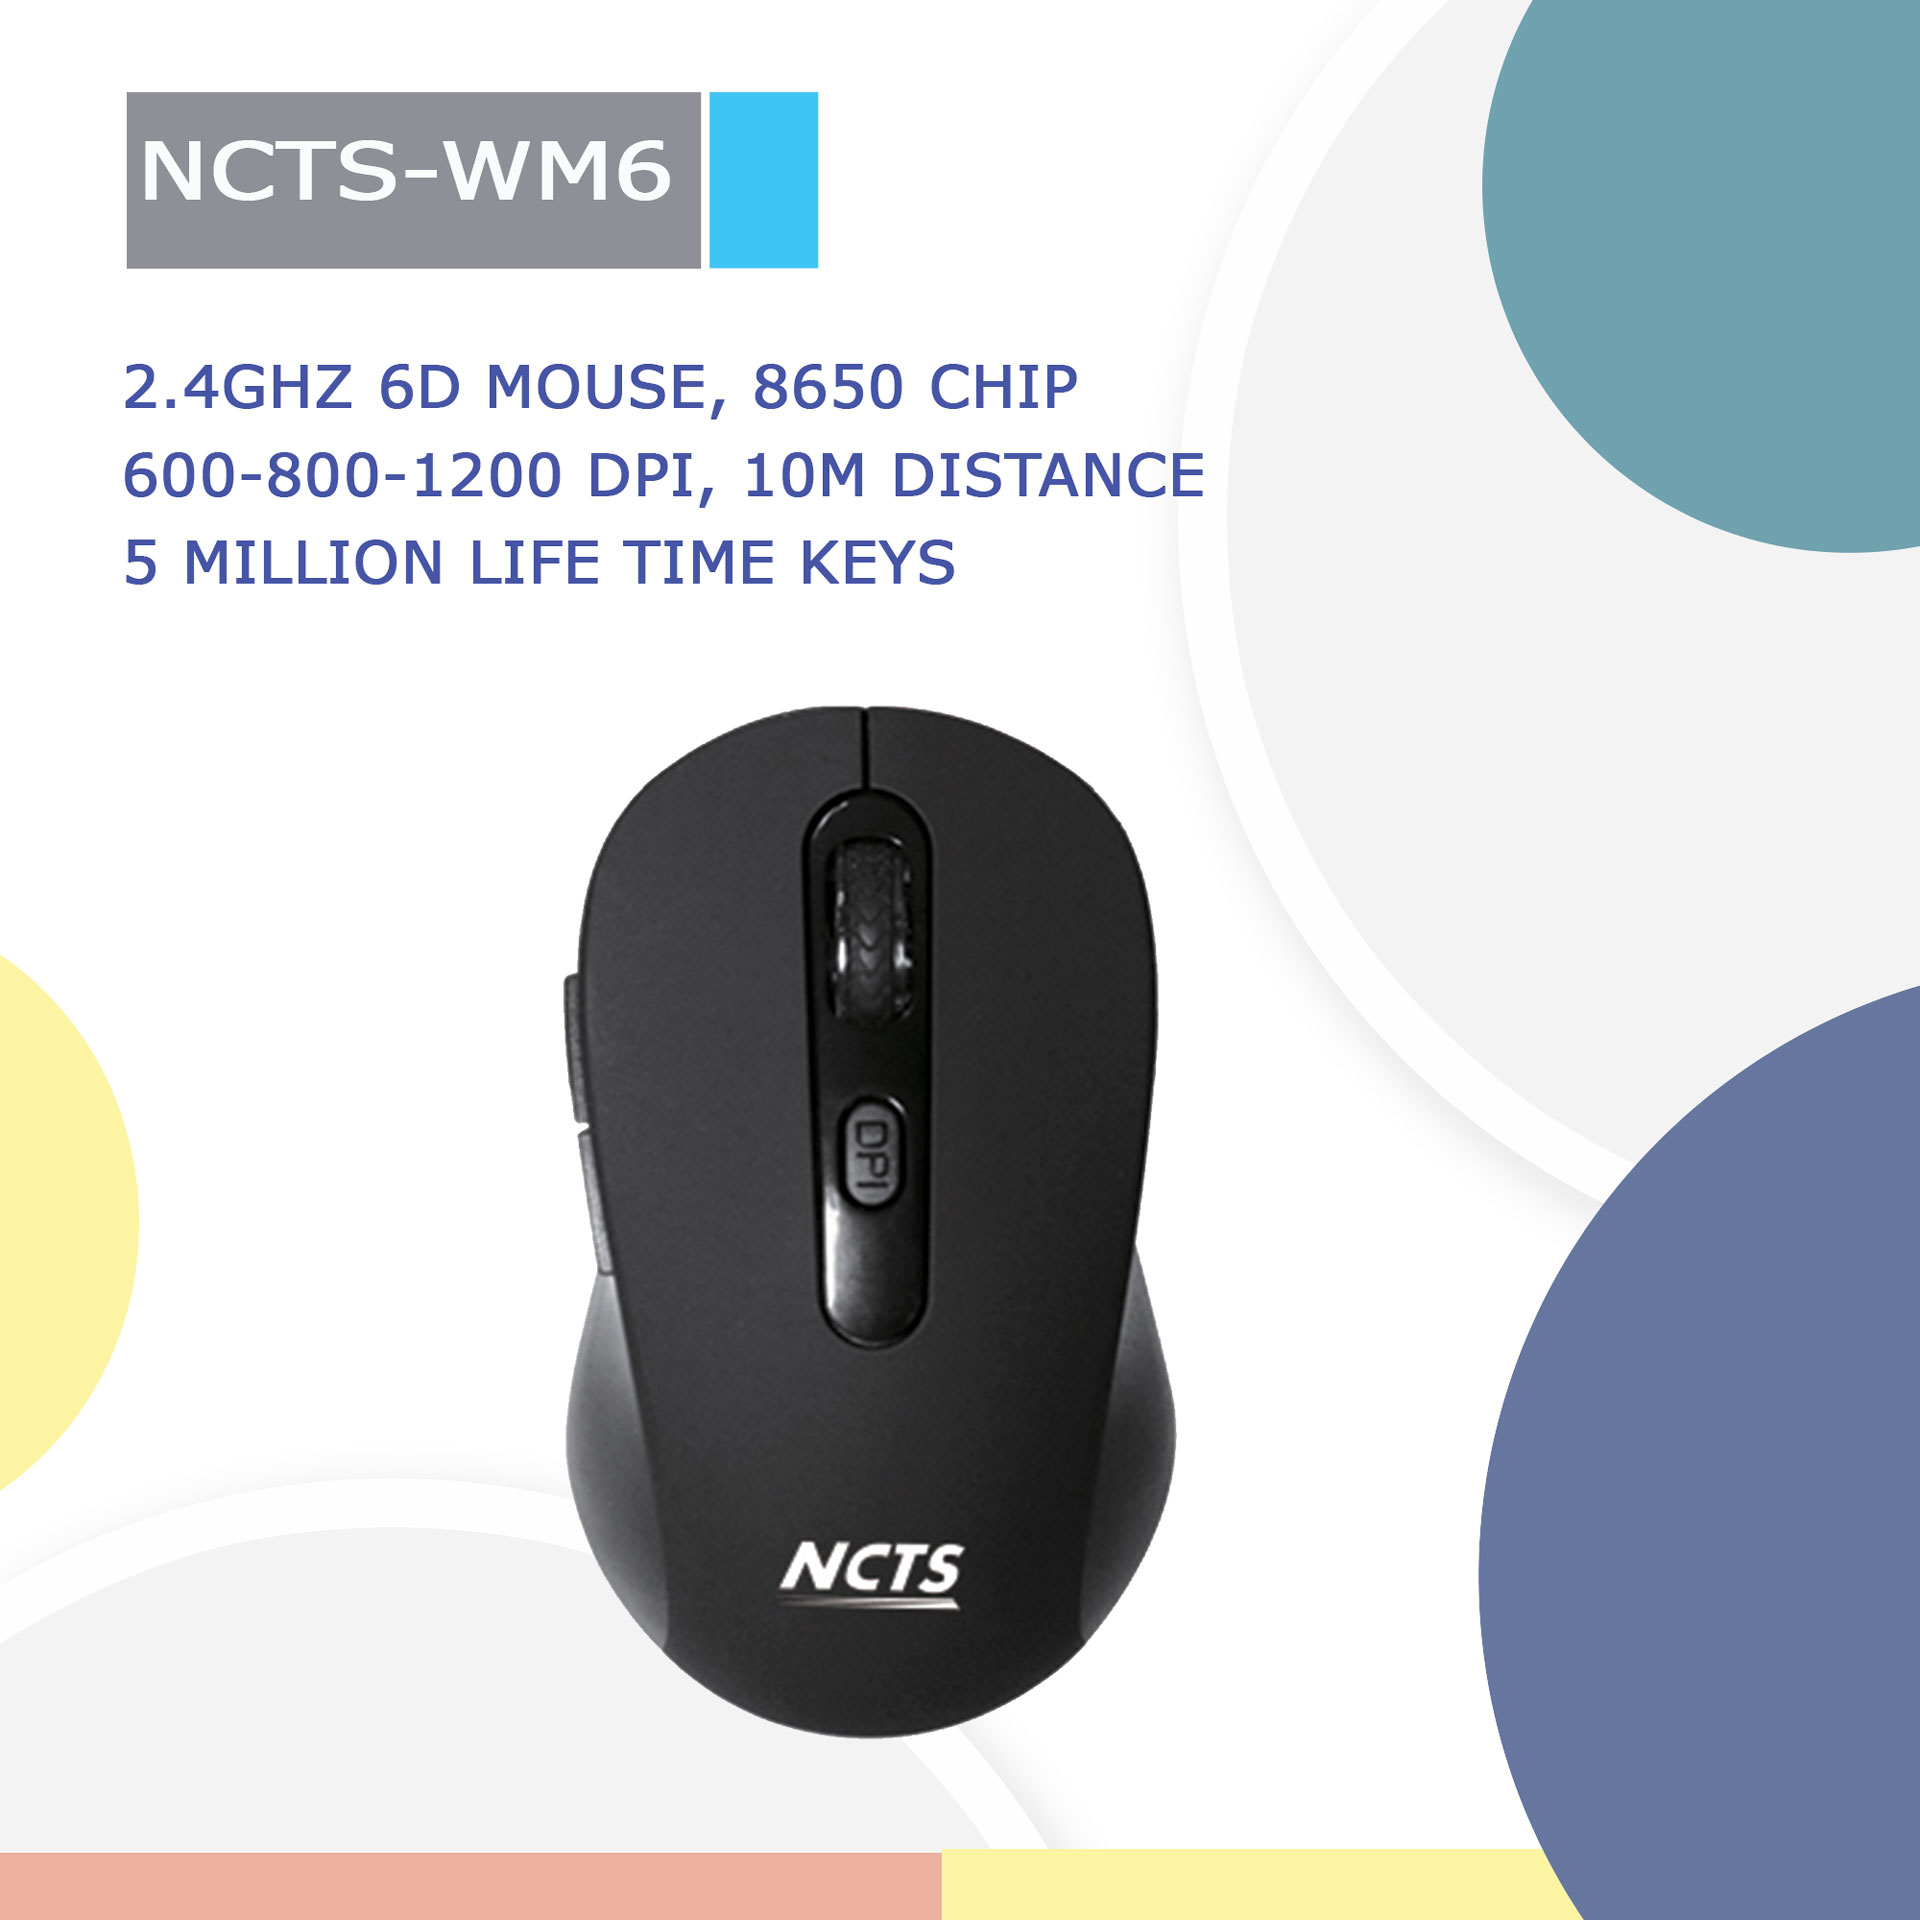 NCTS-WM6